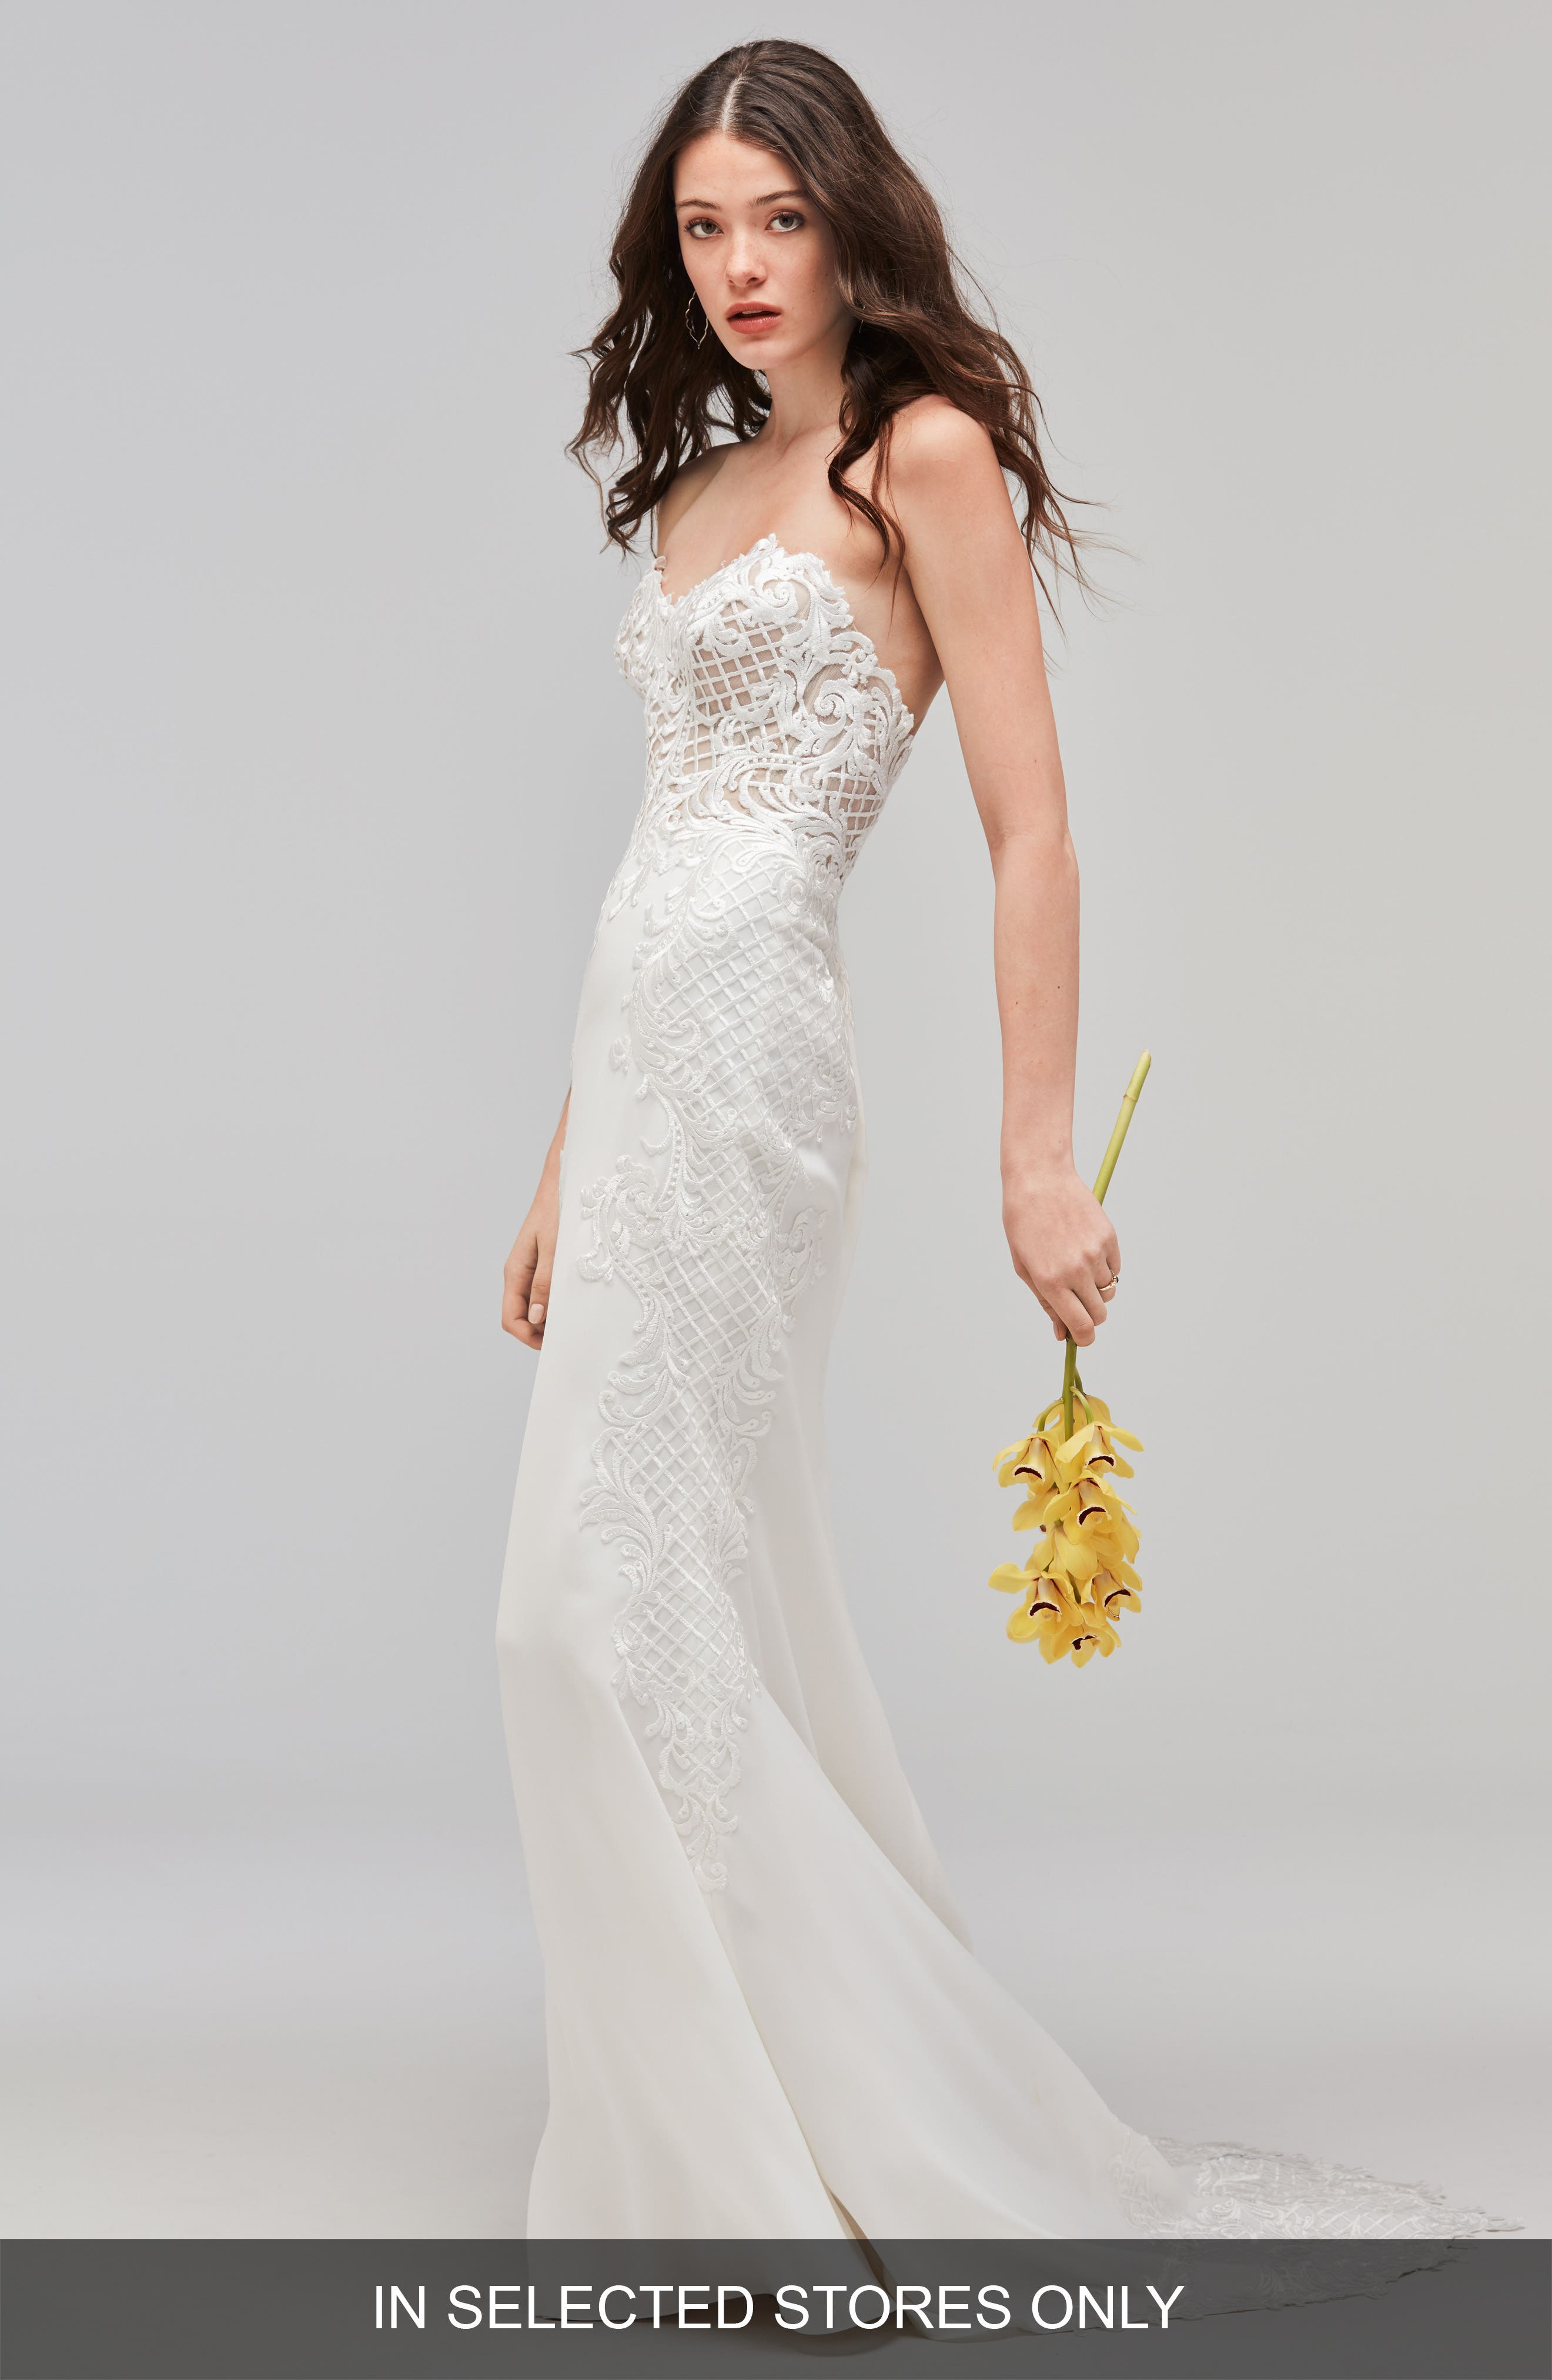 Haizea Strapless Lace & Crepe Gown,                             Main thumbnail 1, color,                             Ivory